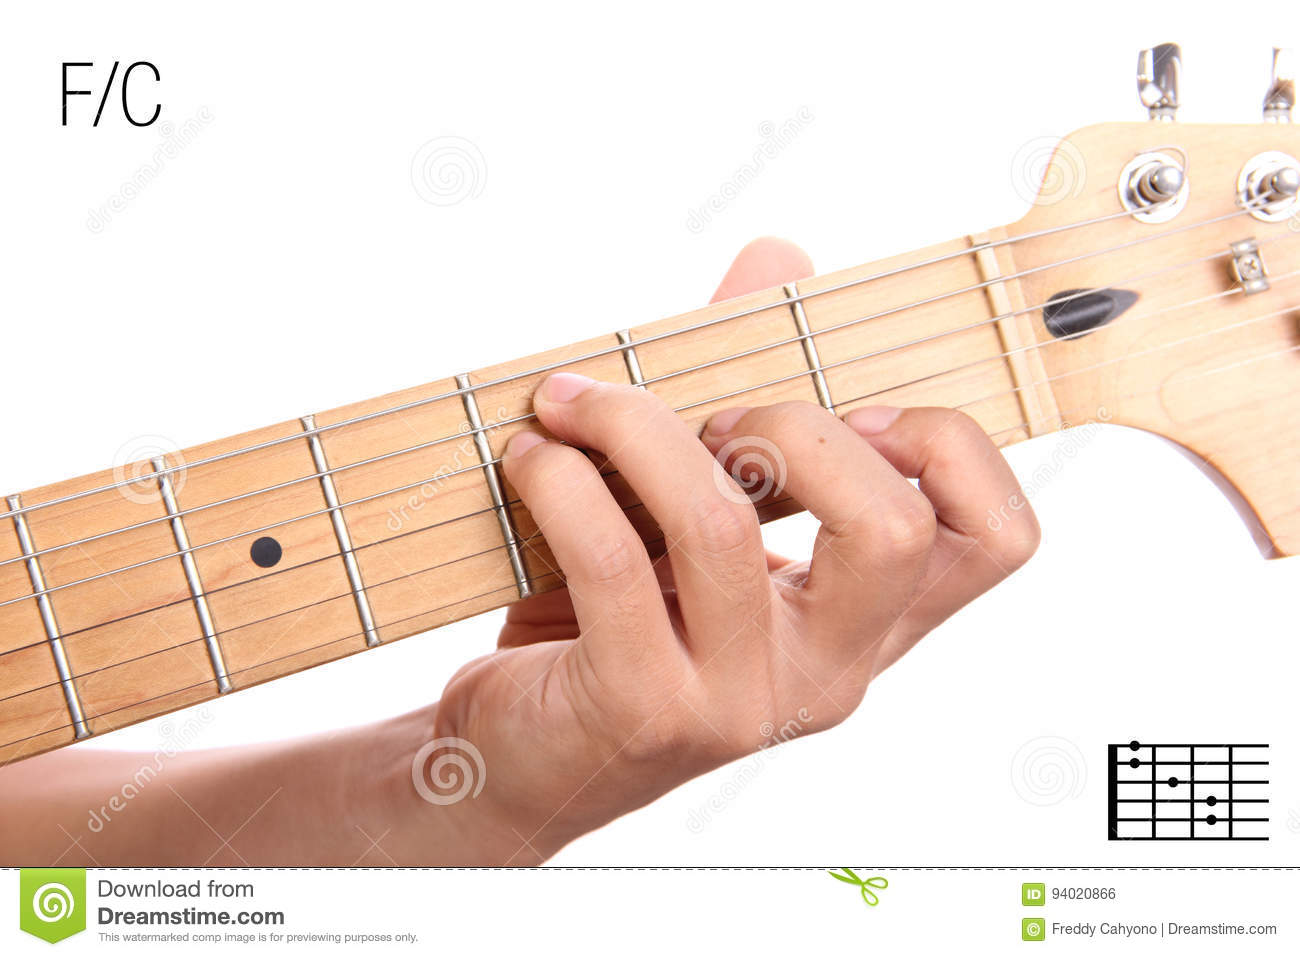 Cg guitar chord tutorial stock image image of minor 94020799 fc guitar chord tutorial royalty free stock image hexwebz Choice Image